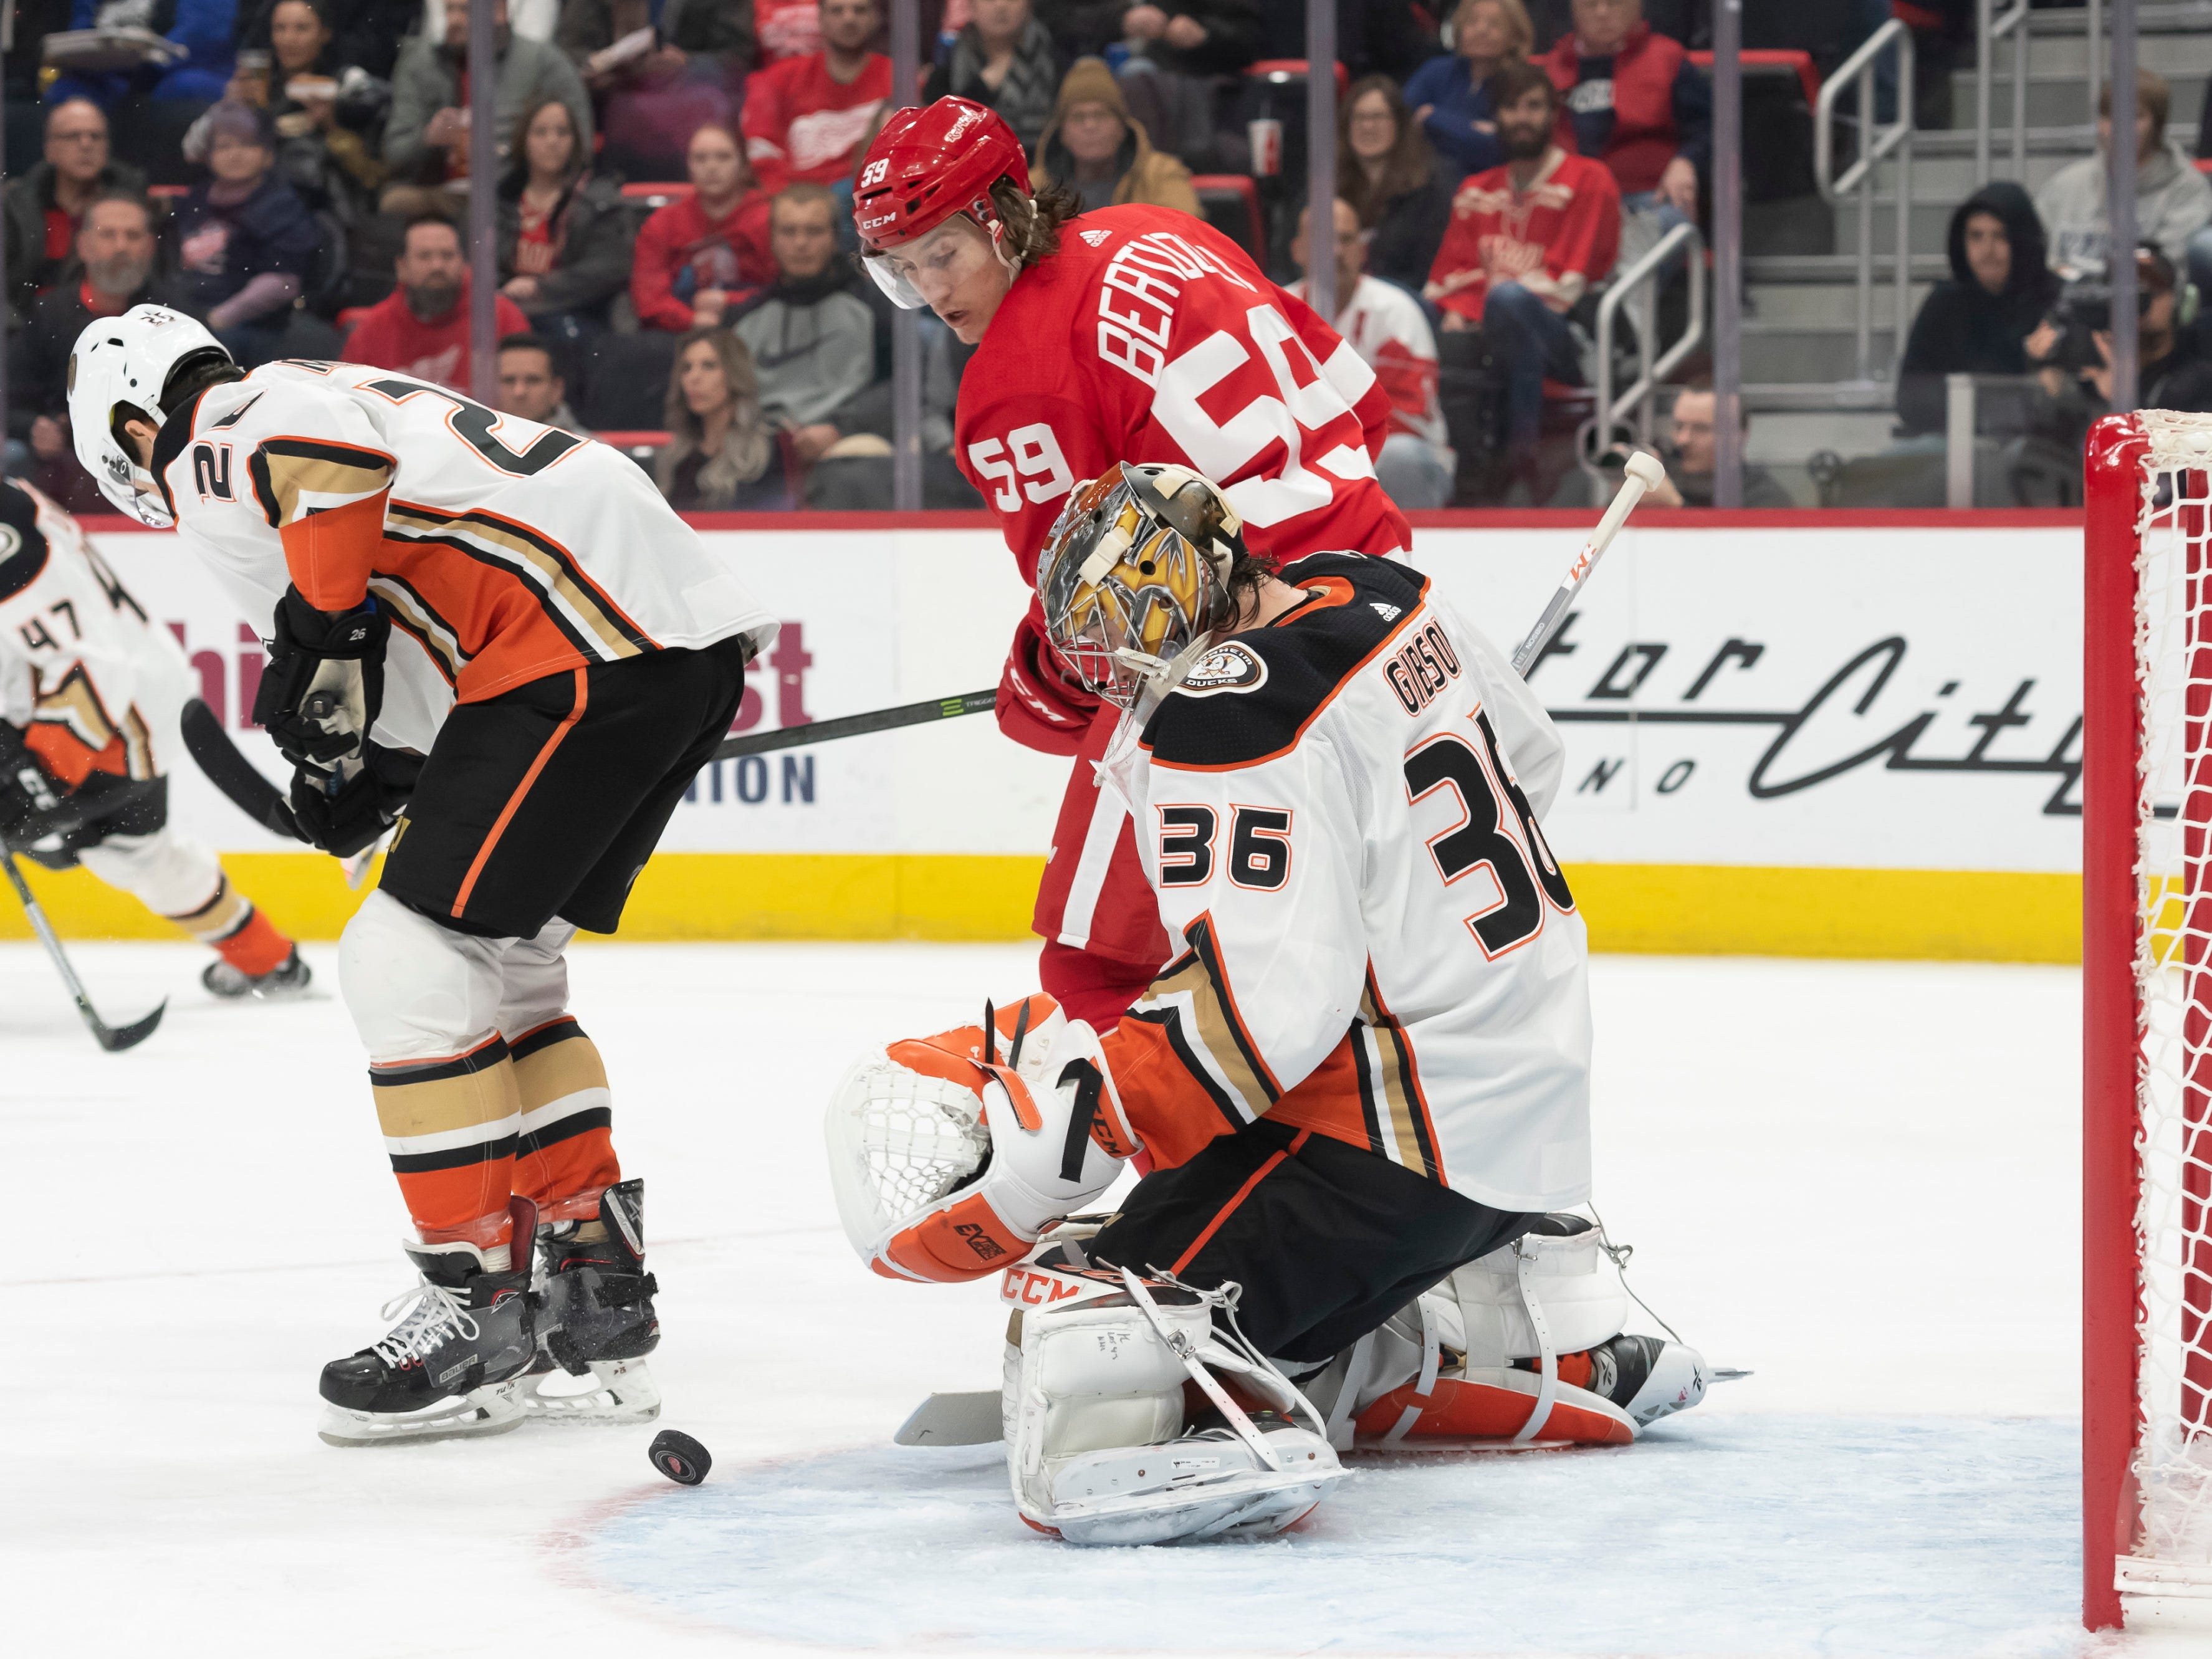 Detroit left wing Tyler Bertuzzi tries to get the puck past Anaheim goaltender John Gibson in the first period.